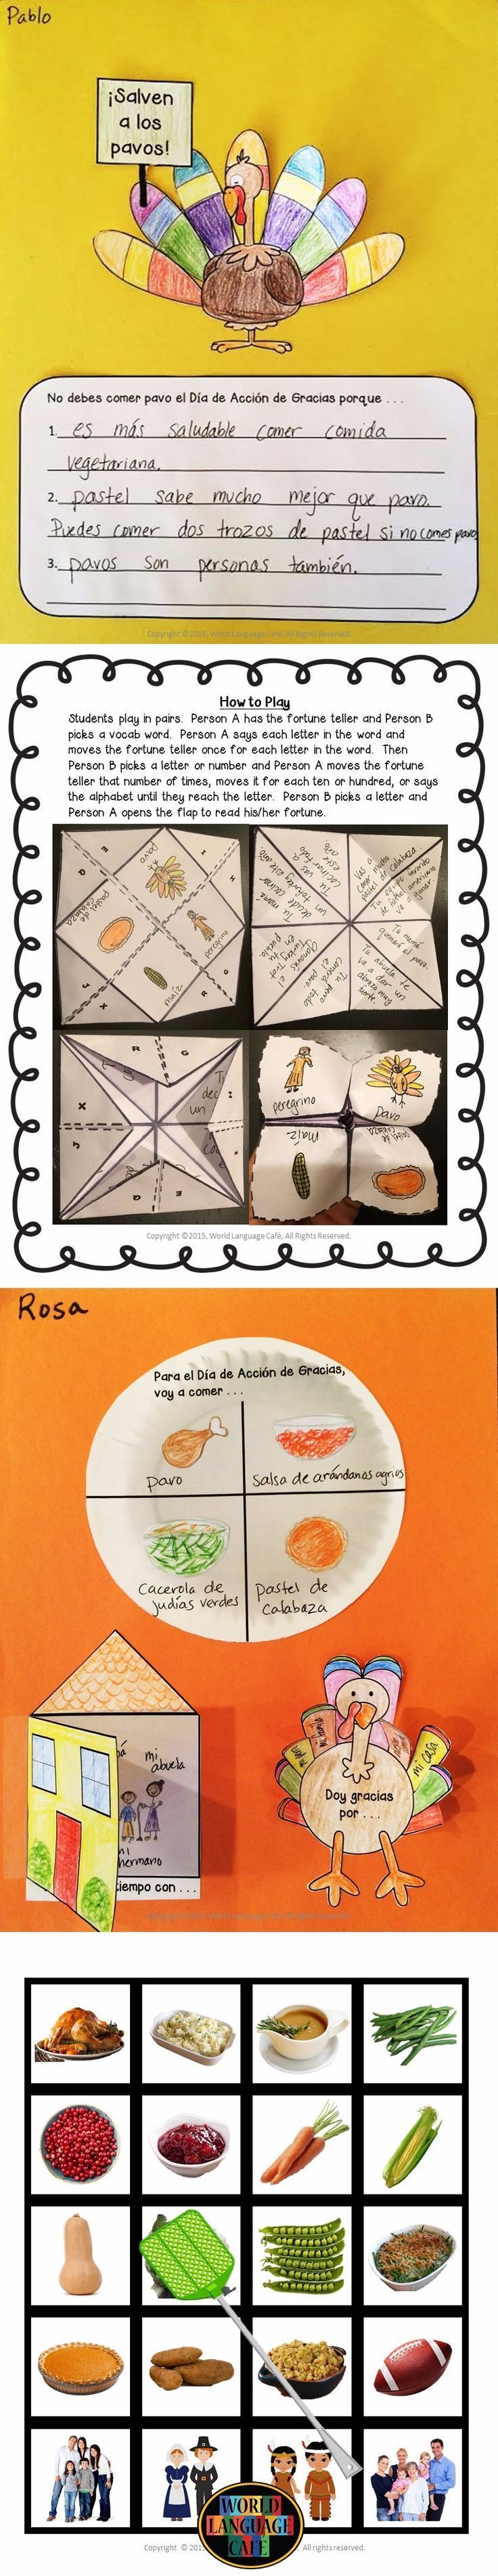 Spanish Thanksgiving writing activities, craftivities, fortune tellers, flashcards, and games to make Spanish class come alive in November.  Save time with these activities and you might even have time to bake pies and clean the house before your relatives arrive.  :)